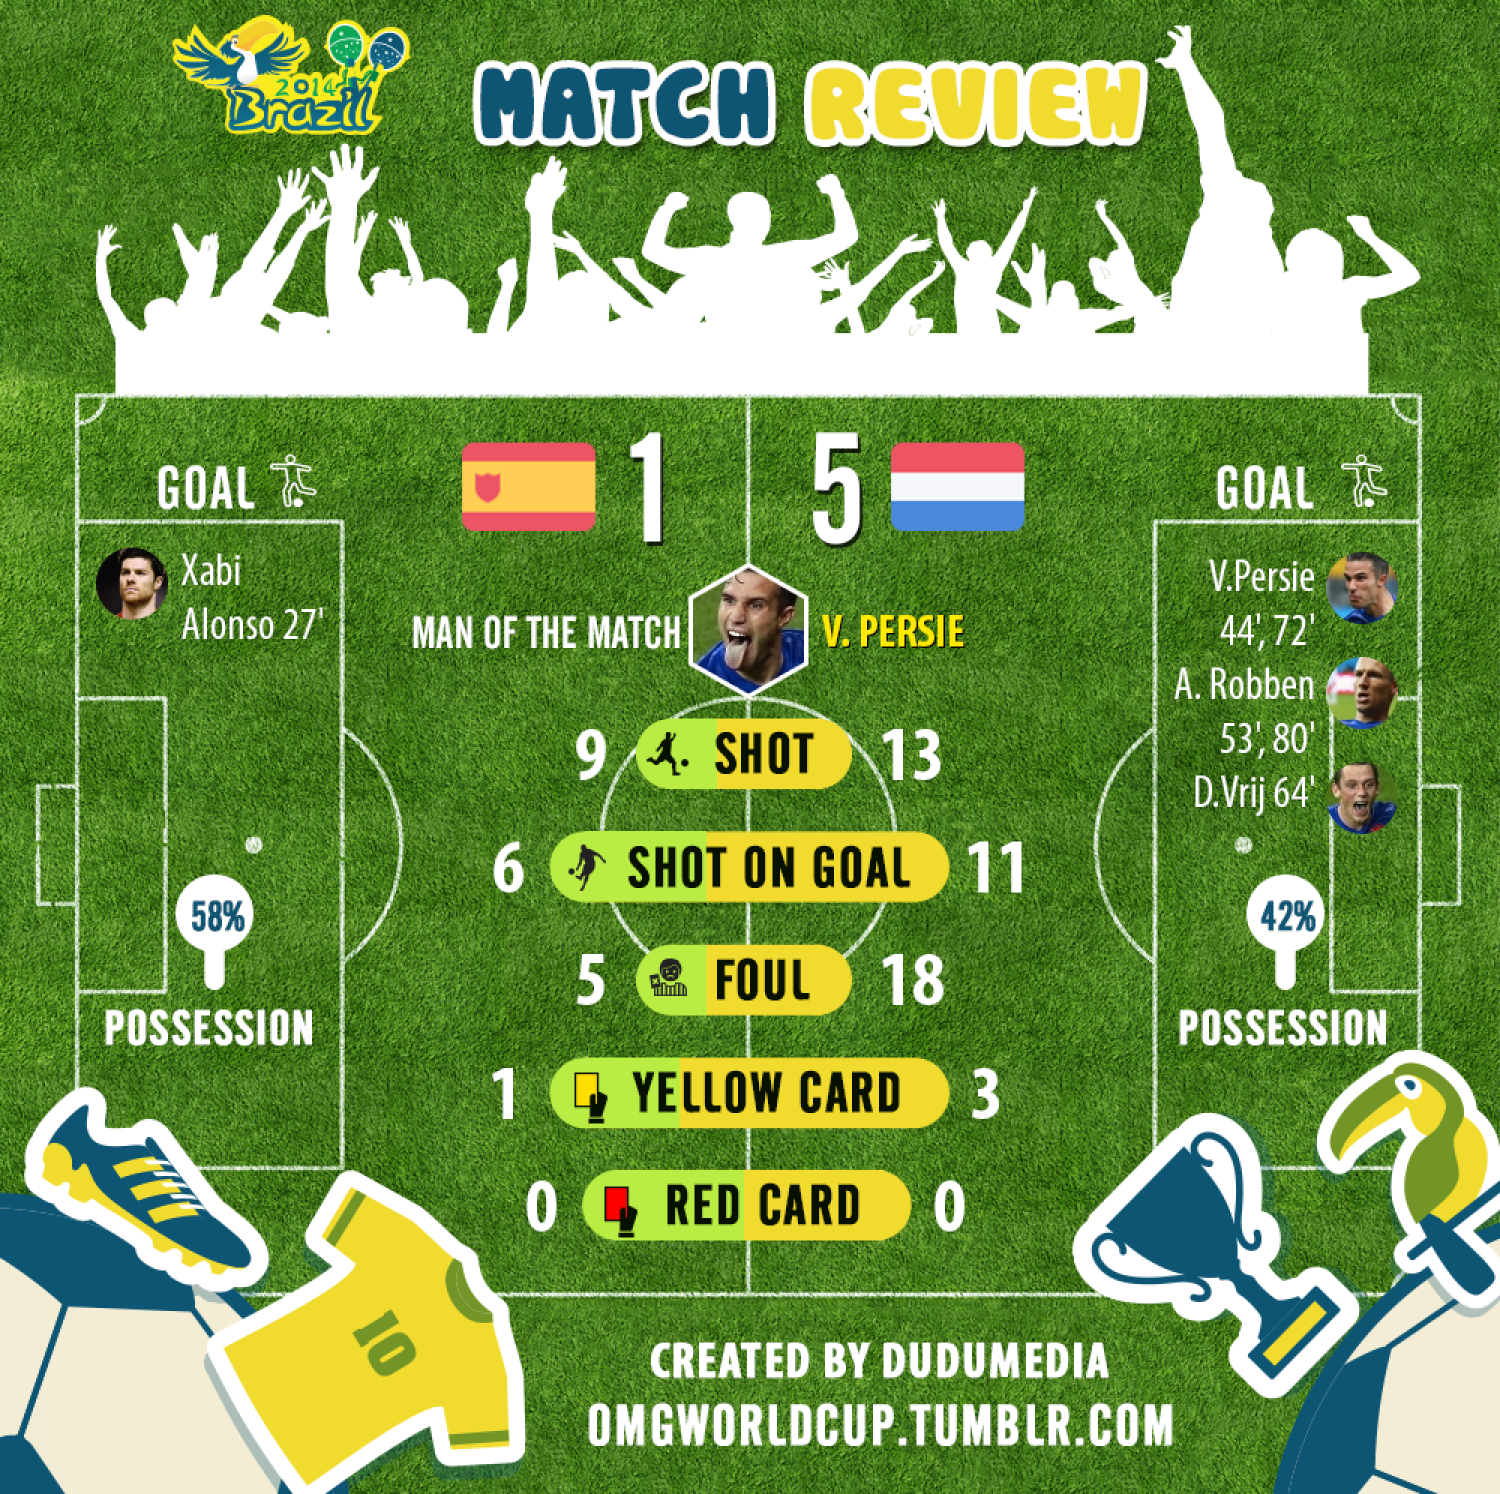 World Cup 2014 Match Review: Spain 1 - 5 Netherlands Infographic